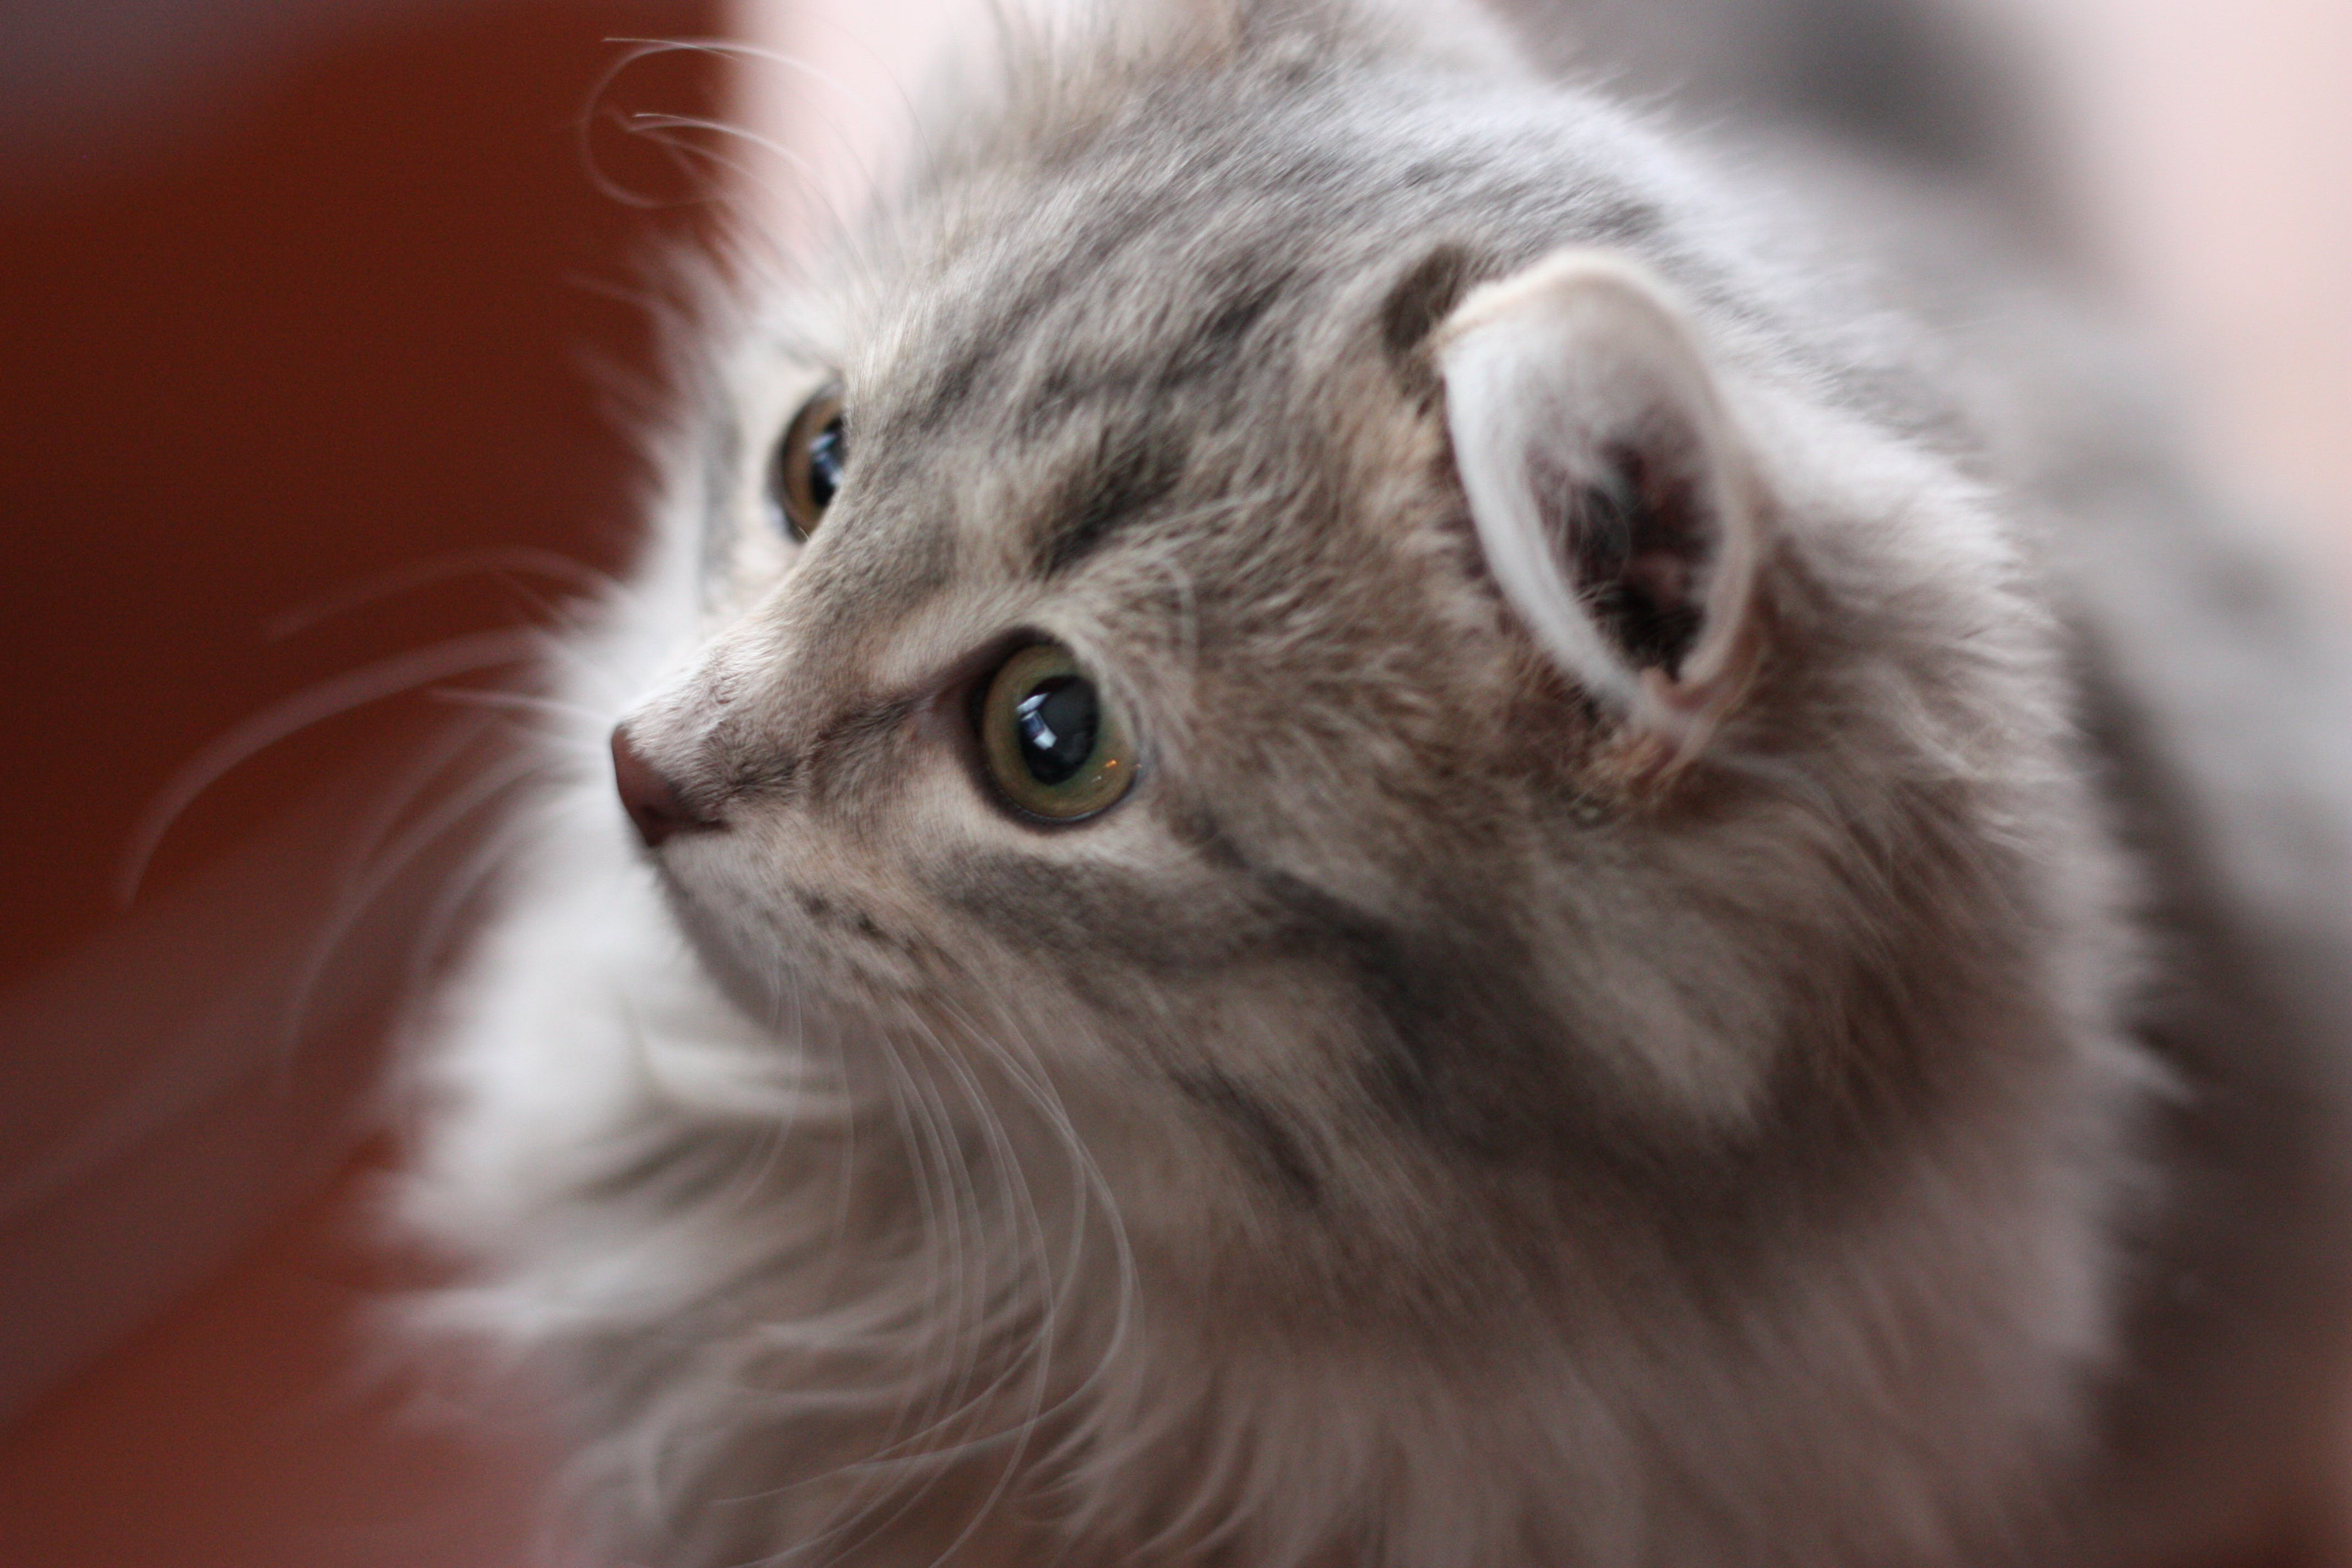 Free stock photo of cat, grey cat, snout